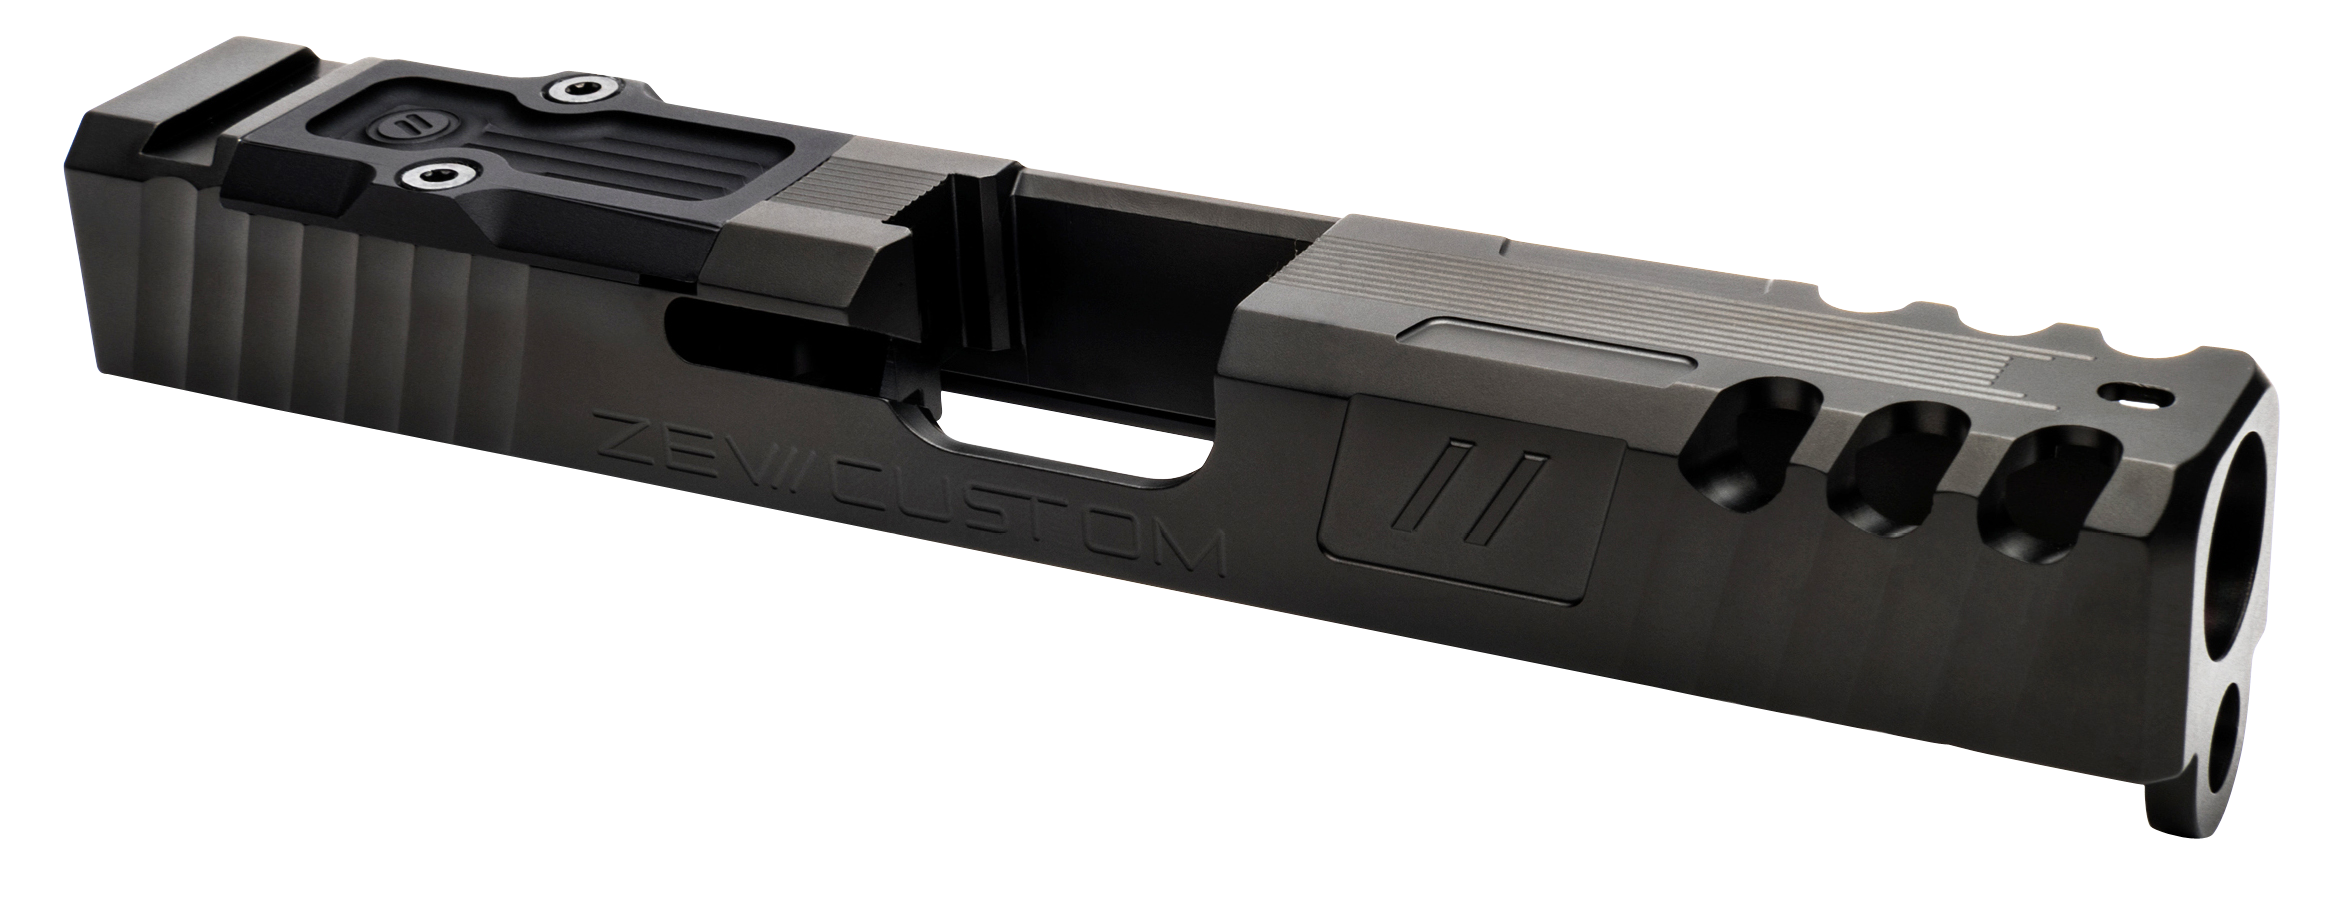 ZEV SLDZ193GSPAR Spartan RMR Slide compatible with Glock 19 Gen3 17-4 Stainless Steel Black DLC